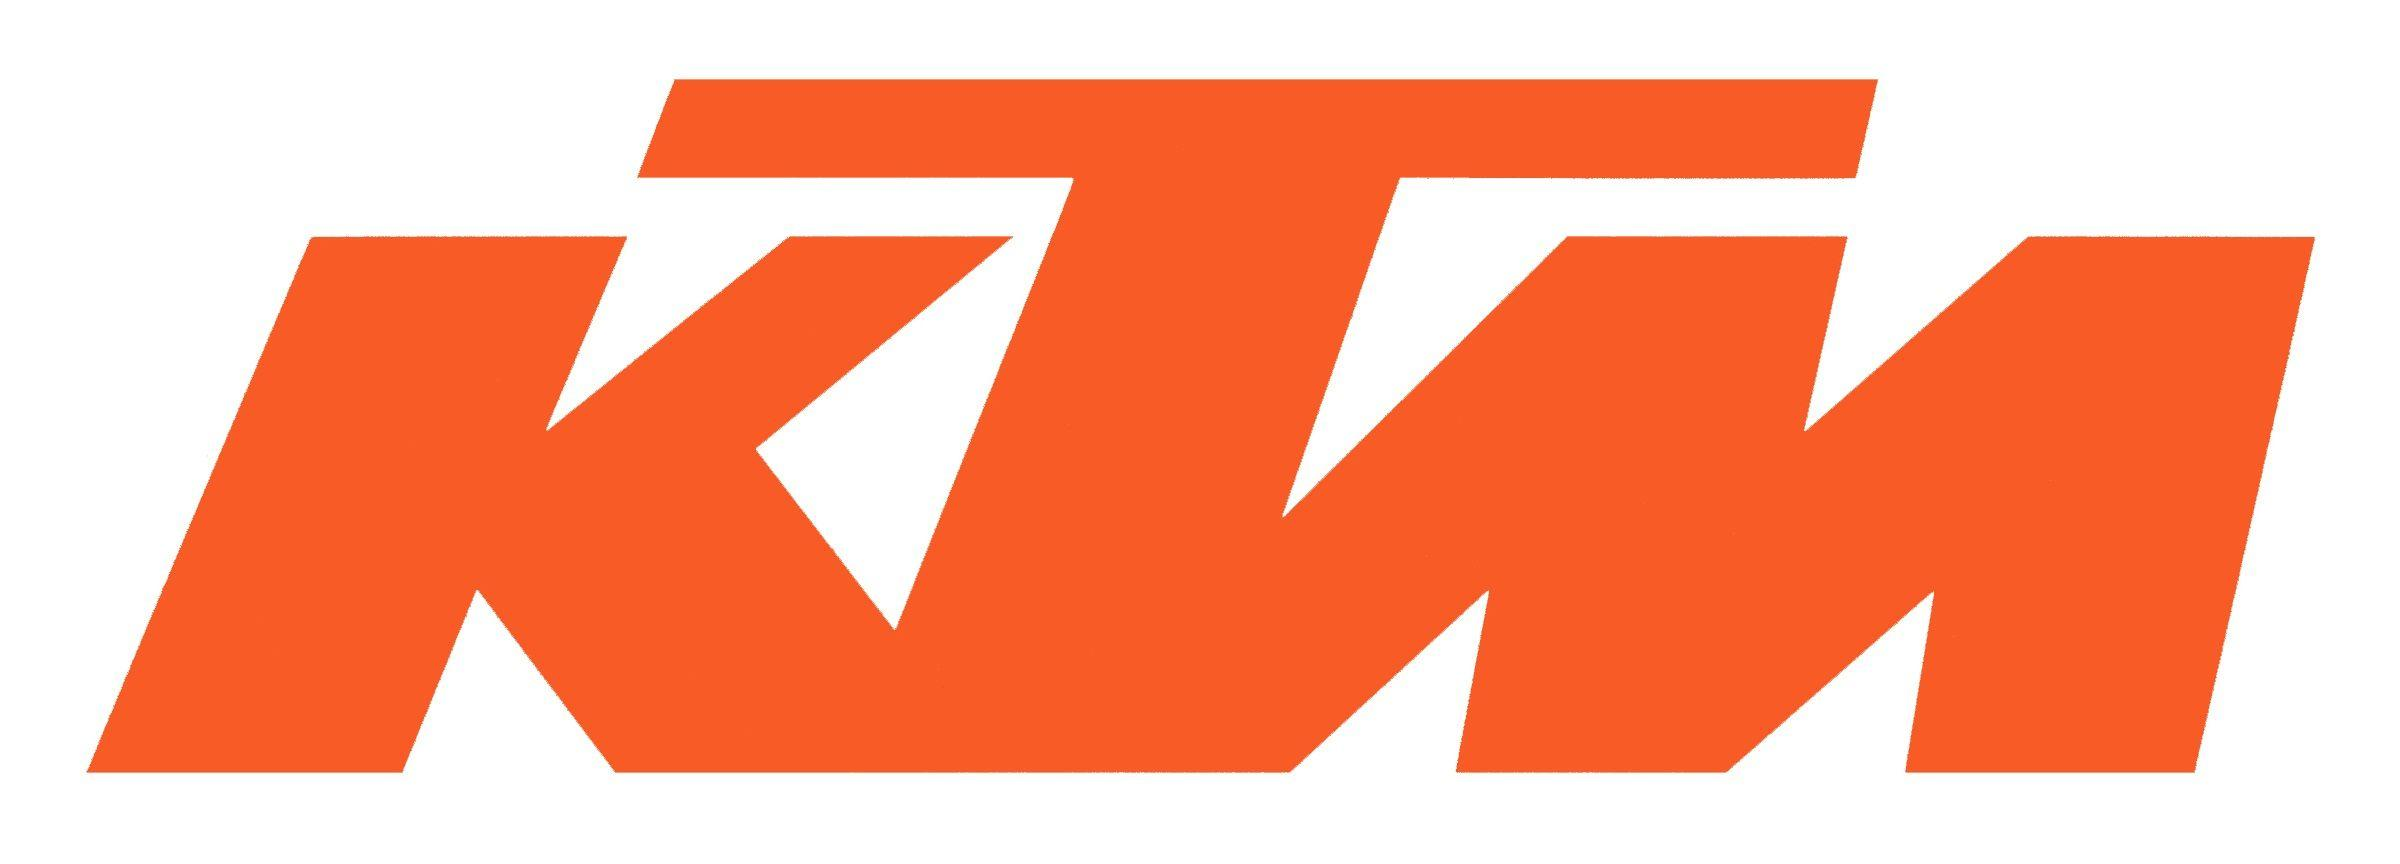 Ktm india to have 500 outlets by 2019 superbikes classifieds